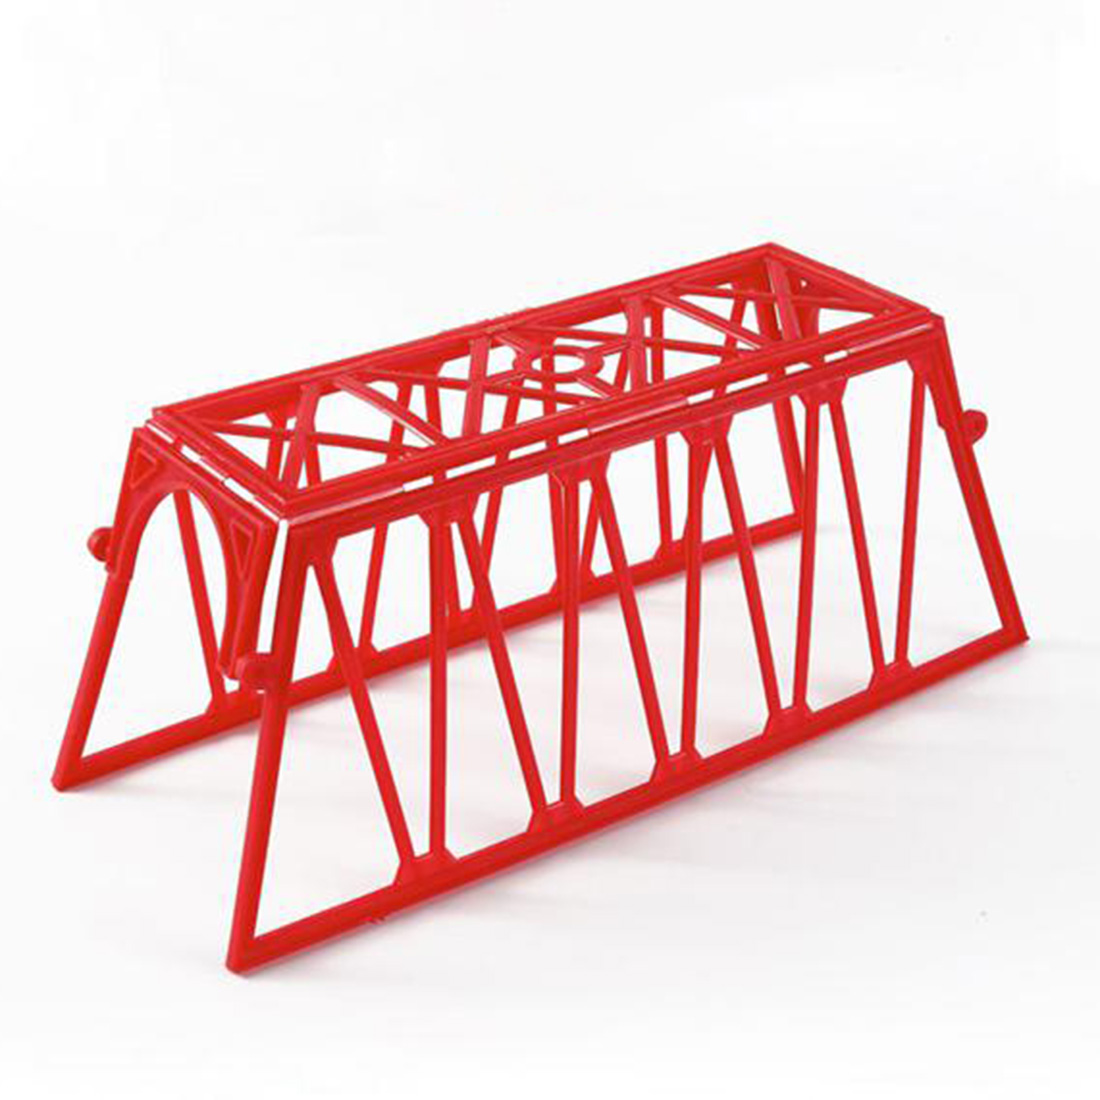 1:87 HO Scale Railway Scene Decoration Bridge Network Model For Sand Table Building Model Building Kits)- Red